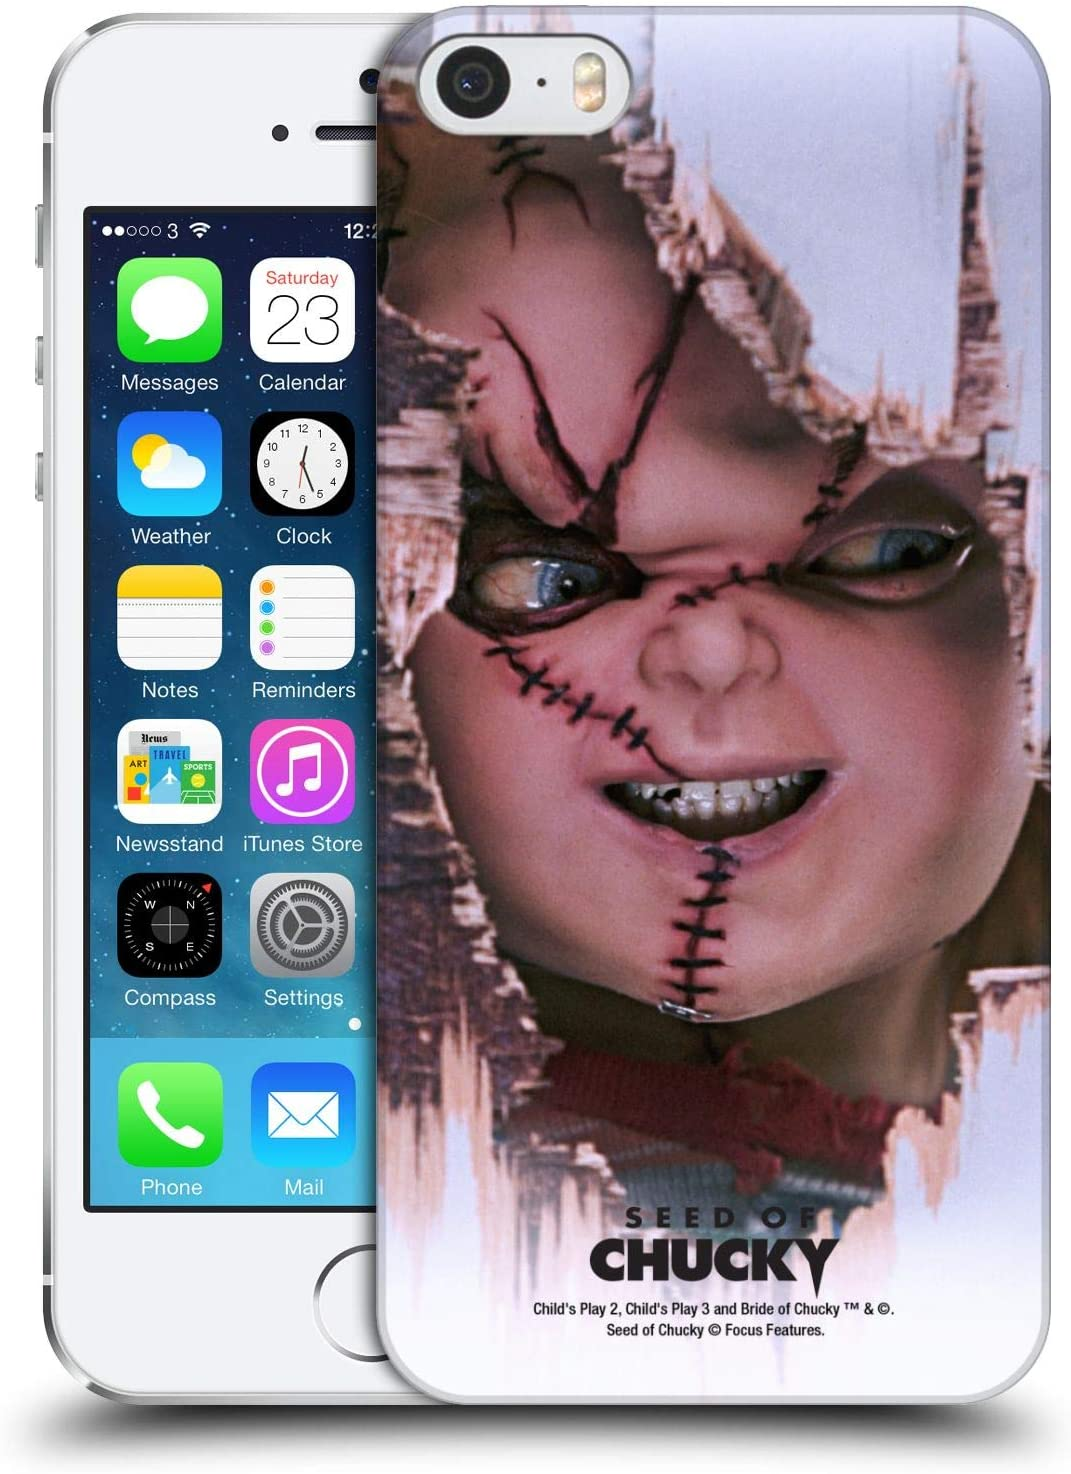 Head Case Designs Officially Licensed Seed of Chucky Scarface Key Art Hard Back Case Compatible with Apple iPhone 5 / iPhone 5s / iPhone SE 2016